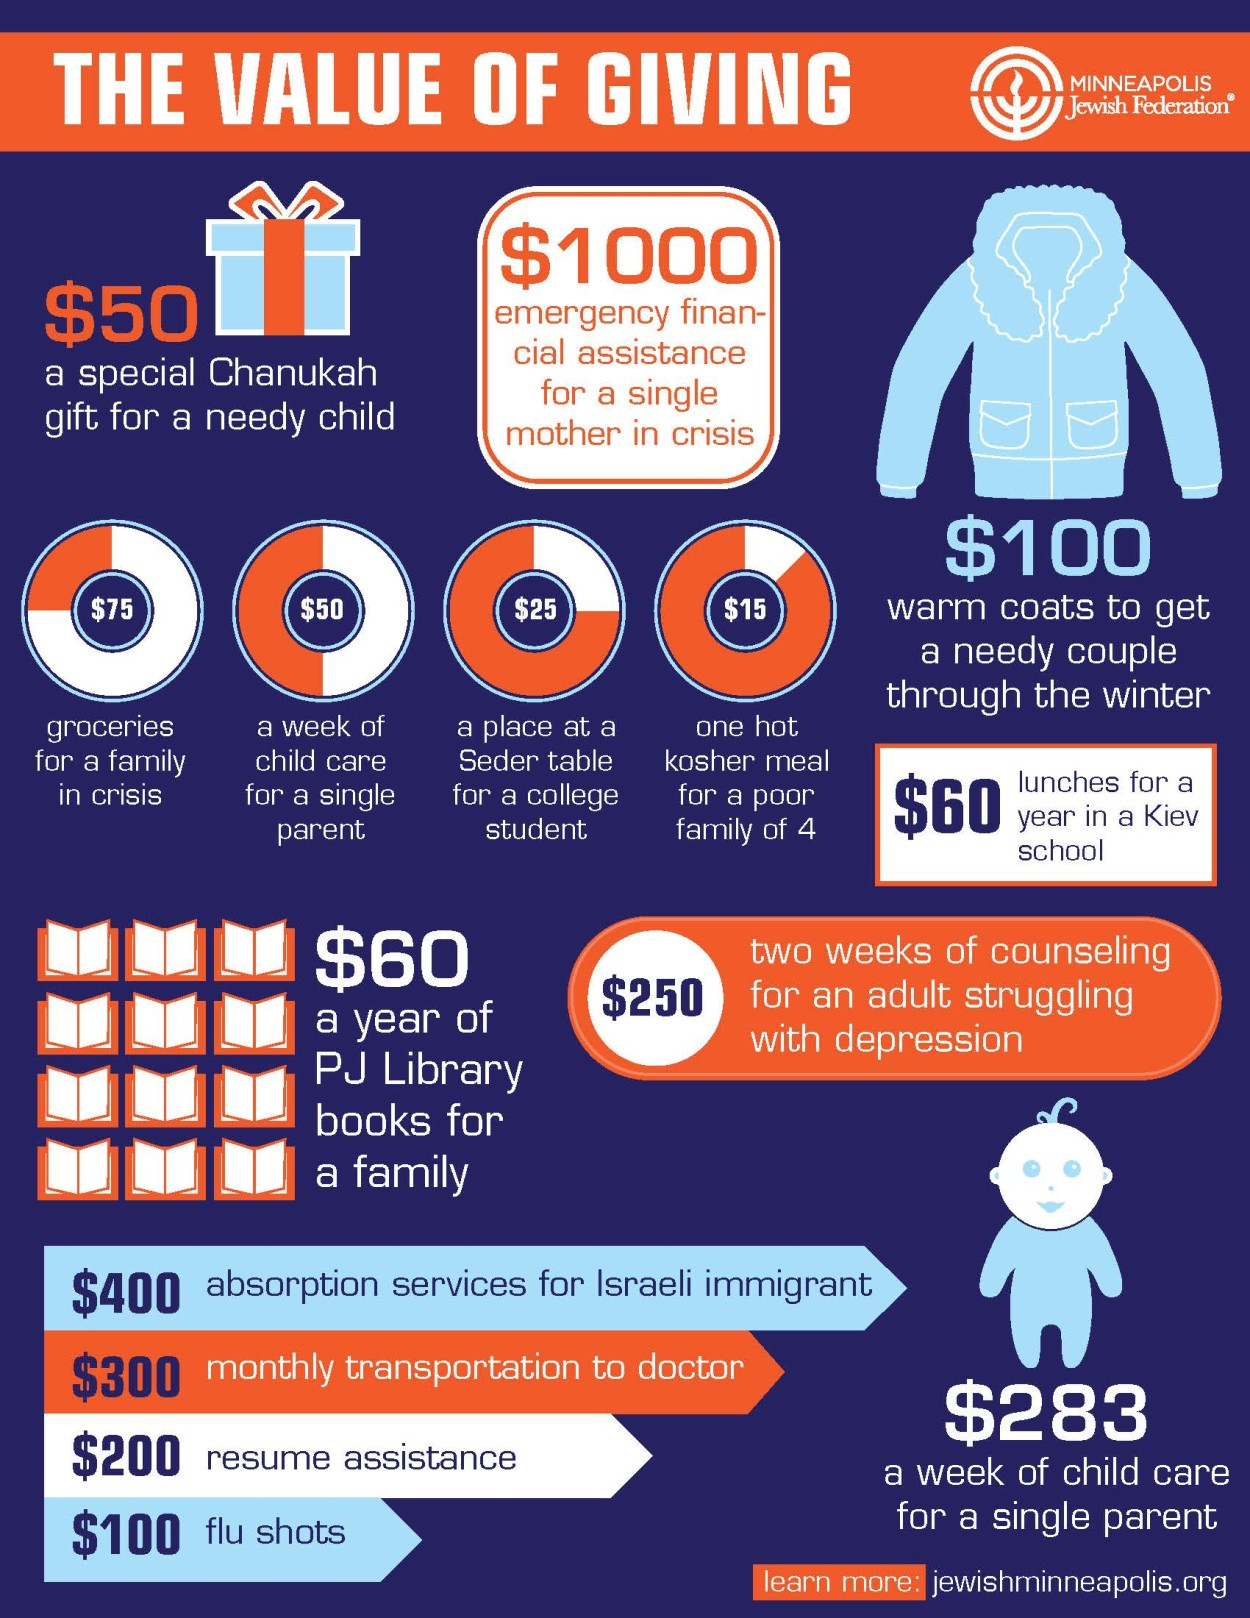 Minneapolis Jewish Federation Infographic by DreamBig Creative Minneapolis, MN